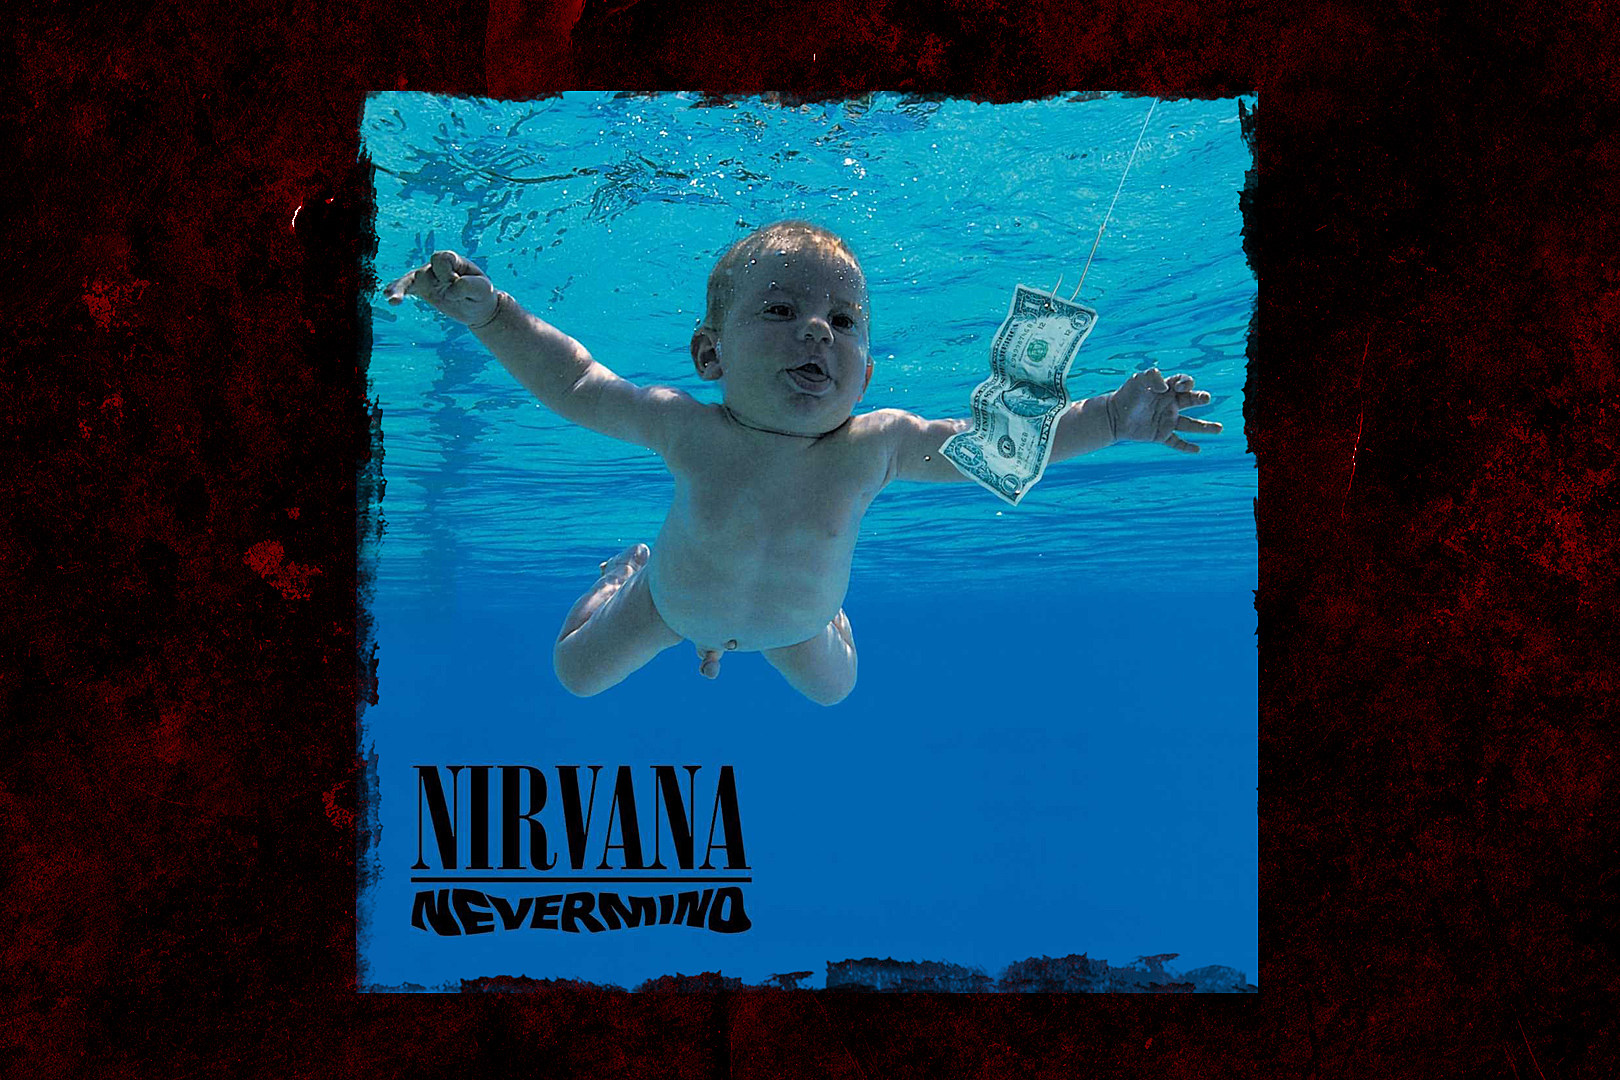 c7d9bd2f 27 Years Ago: Nirvana Change the Music Landscape With 'Nevermind'